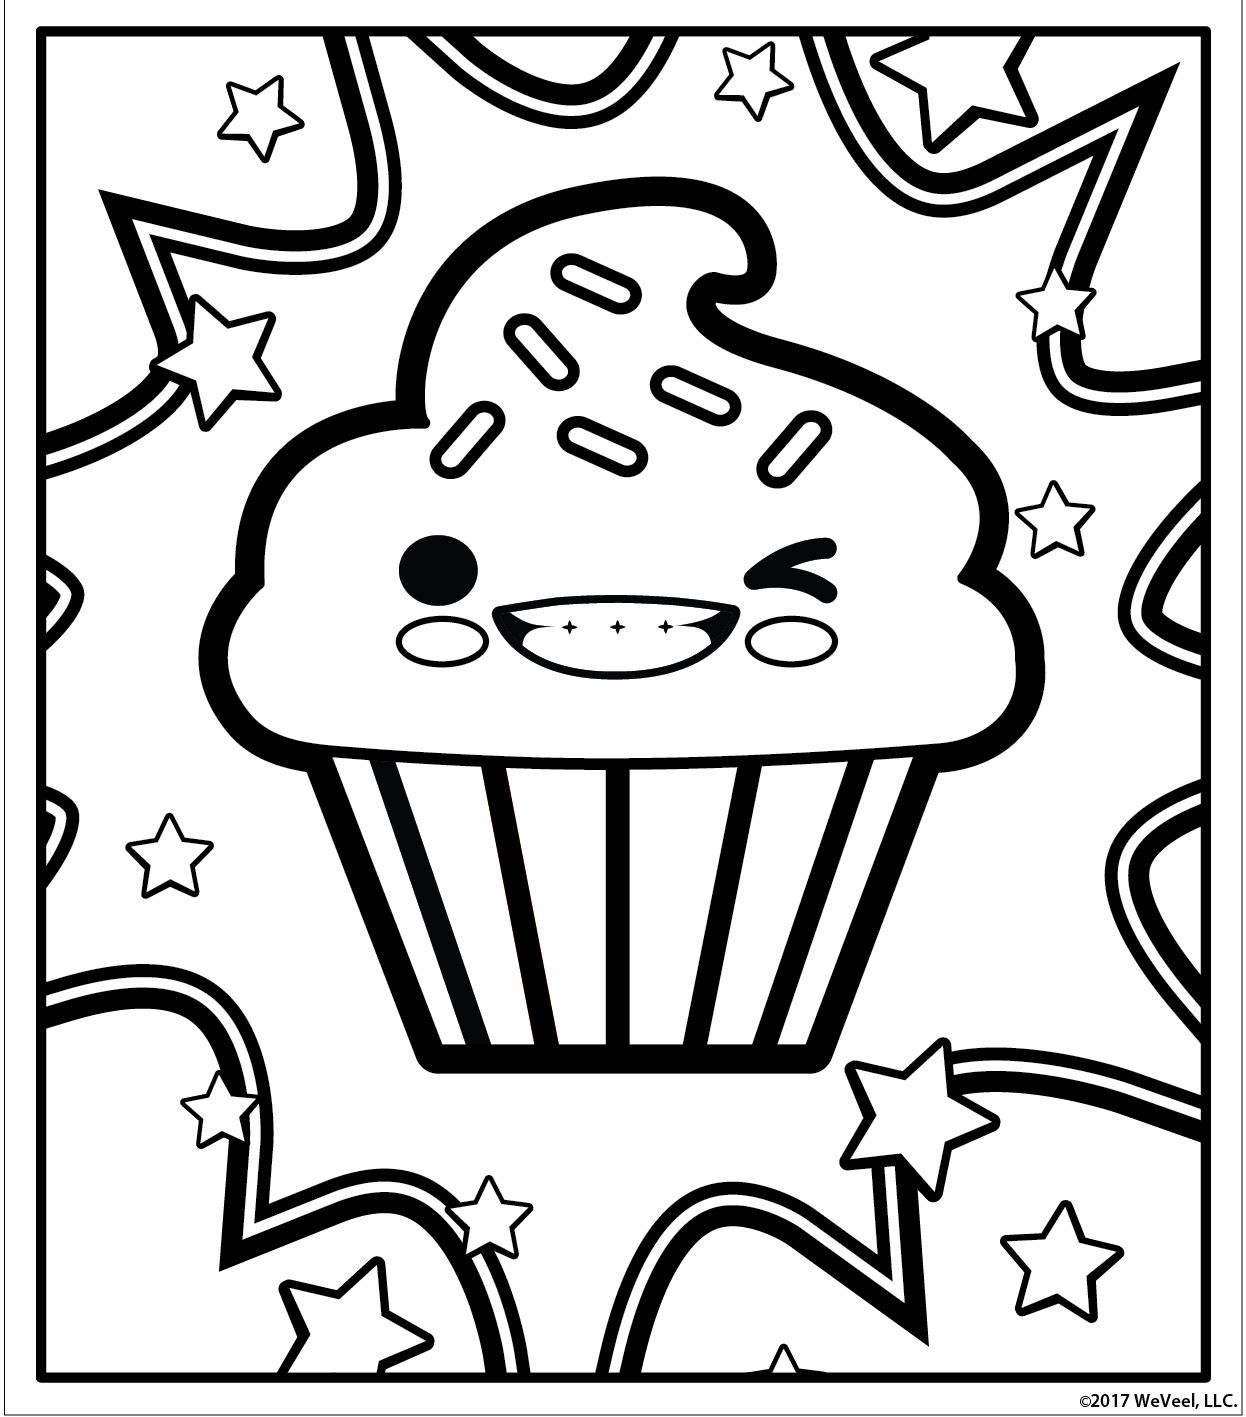 Cute Unicorn Coloring Page Free Printable Coloring Pages Unicorn Coloring Pages Animal Coloring Pages Cute Coloring Pages